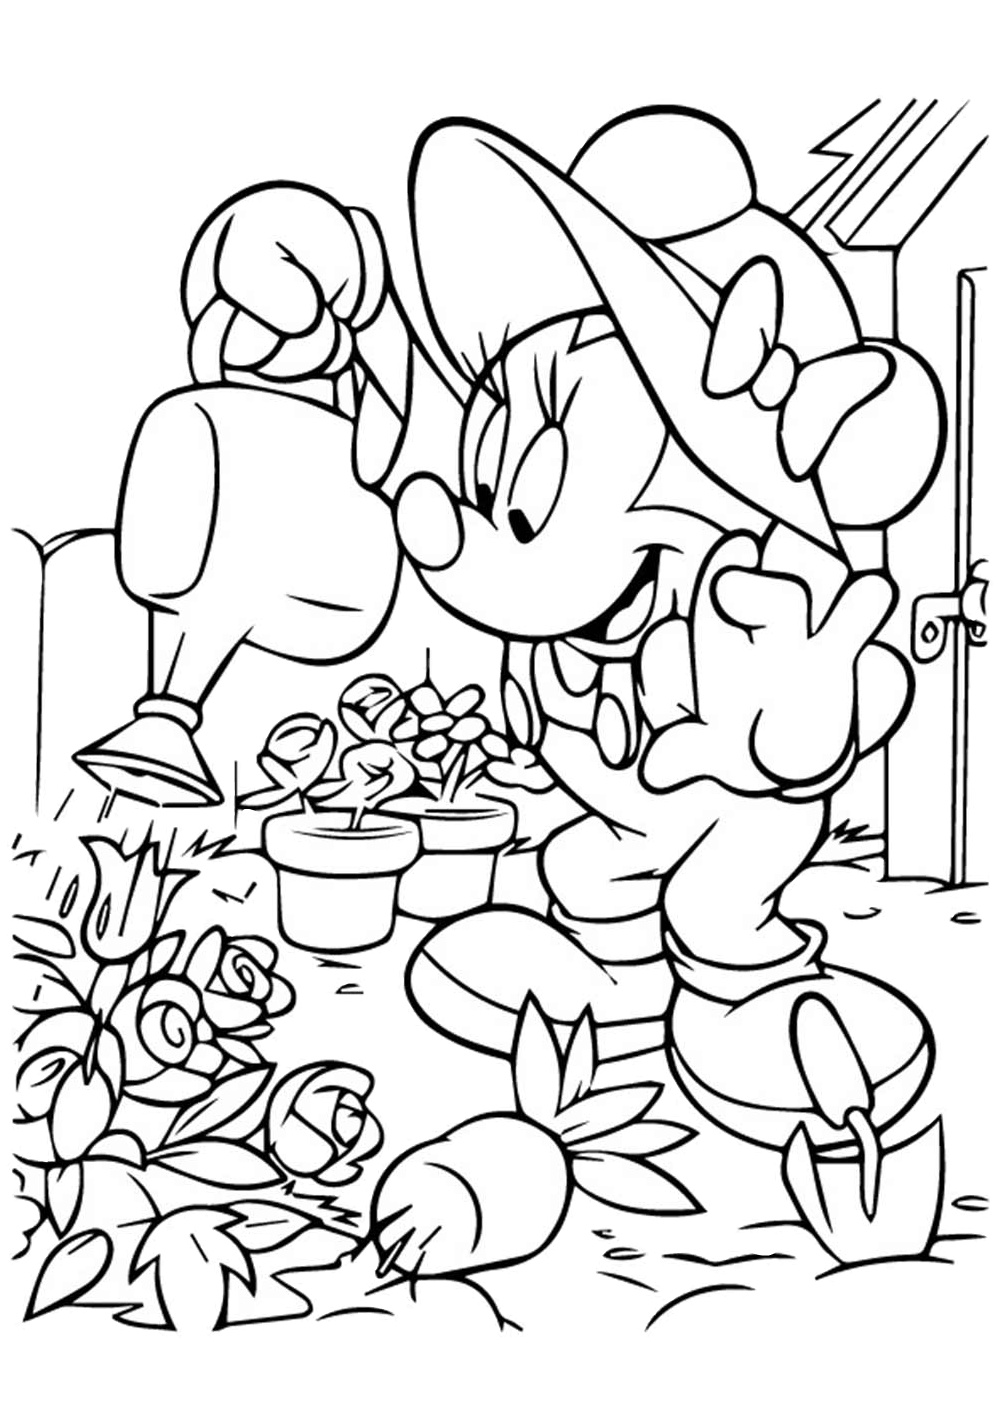 Free Minnie Mouse Coloring Pages Farmer Minnie Mouse Watering Her Flower Garden